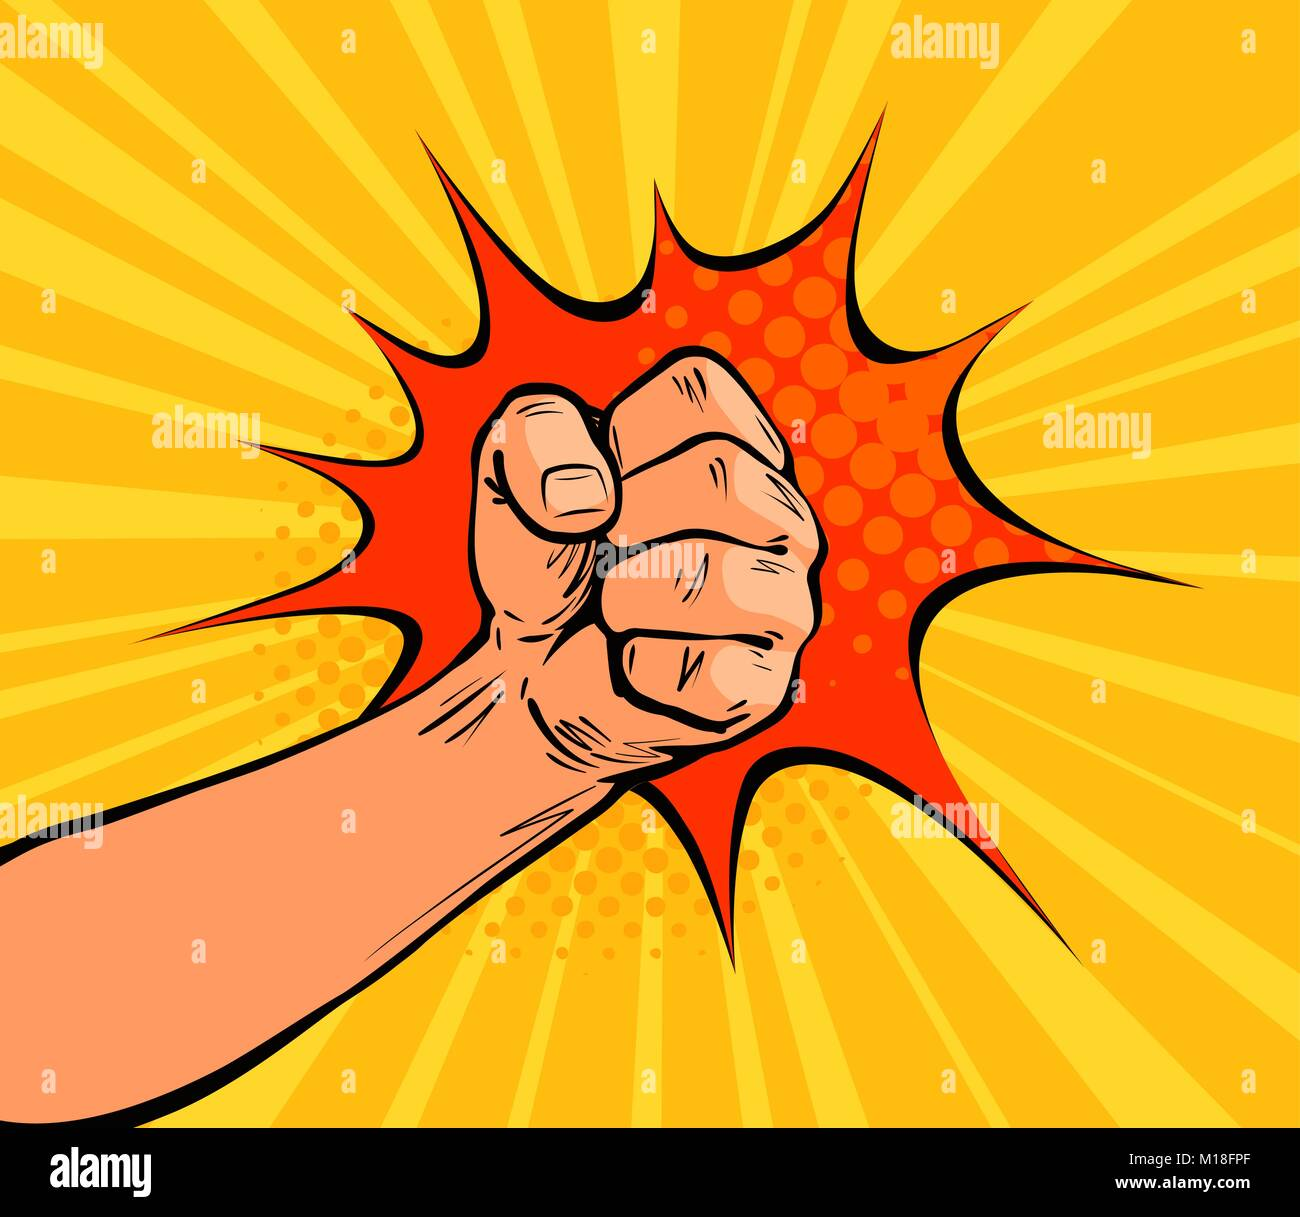 Fist punching, crushing blow or strong punch drawn in pop art retro comic style. Cartoon vector illustration - Stock Vector